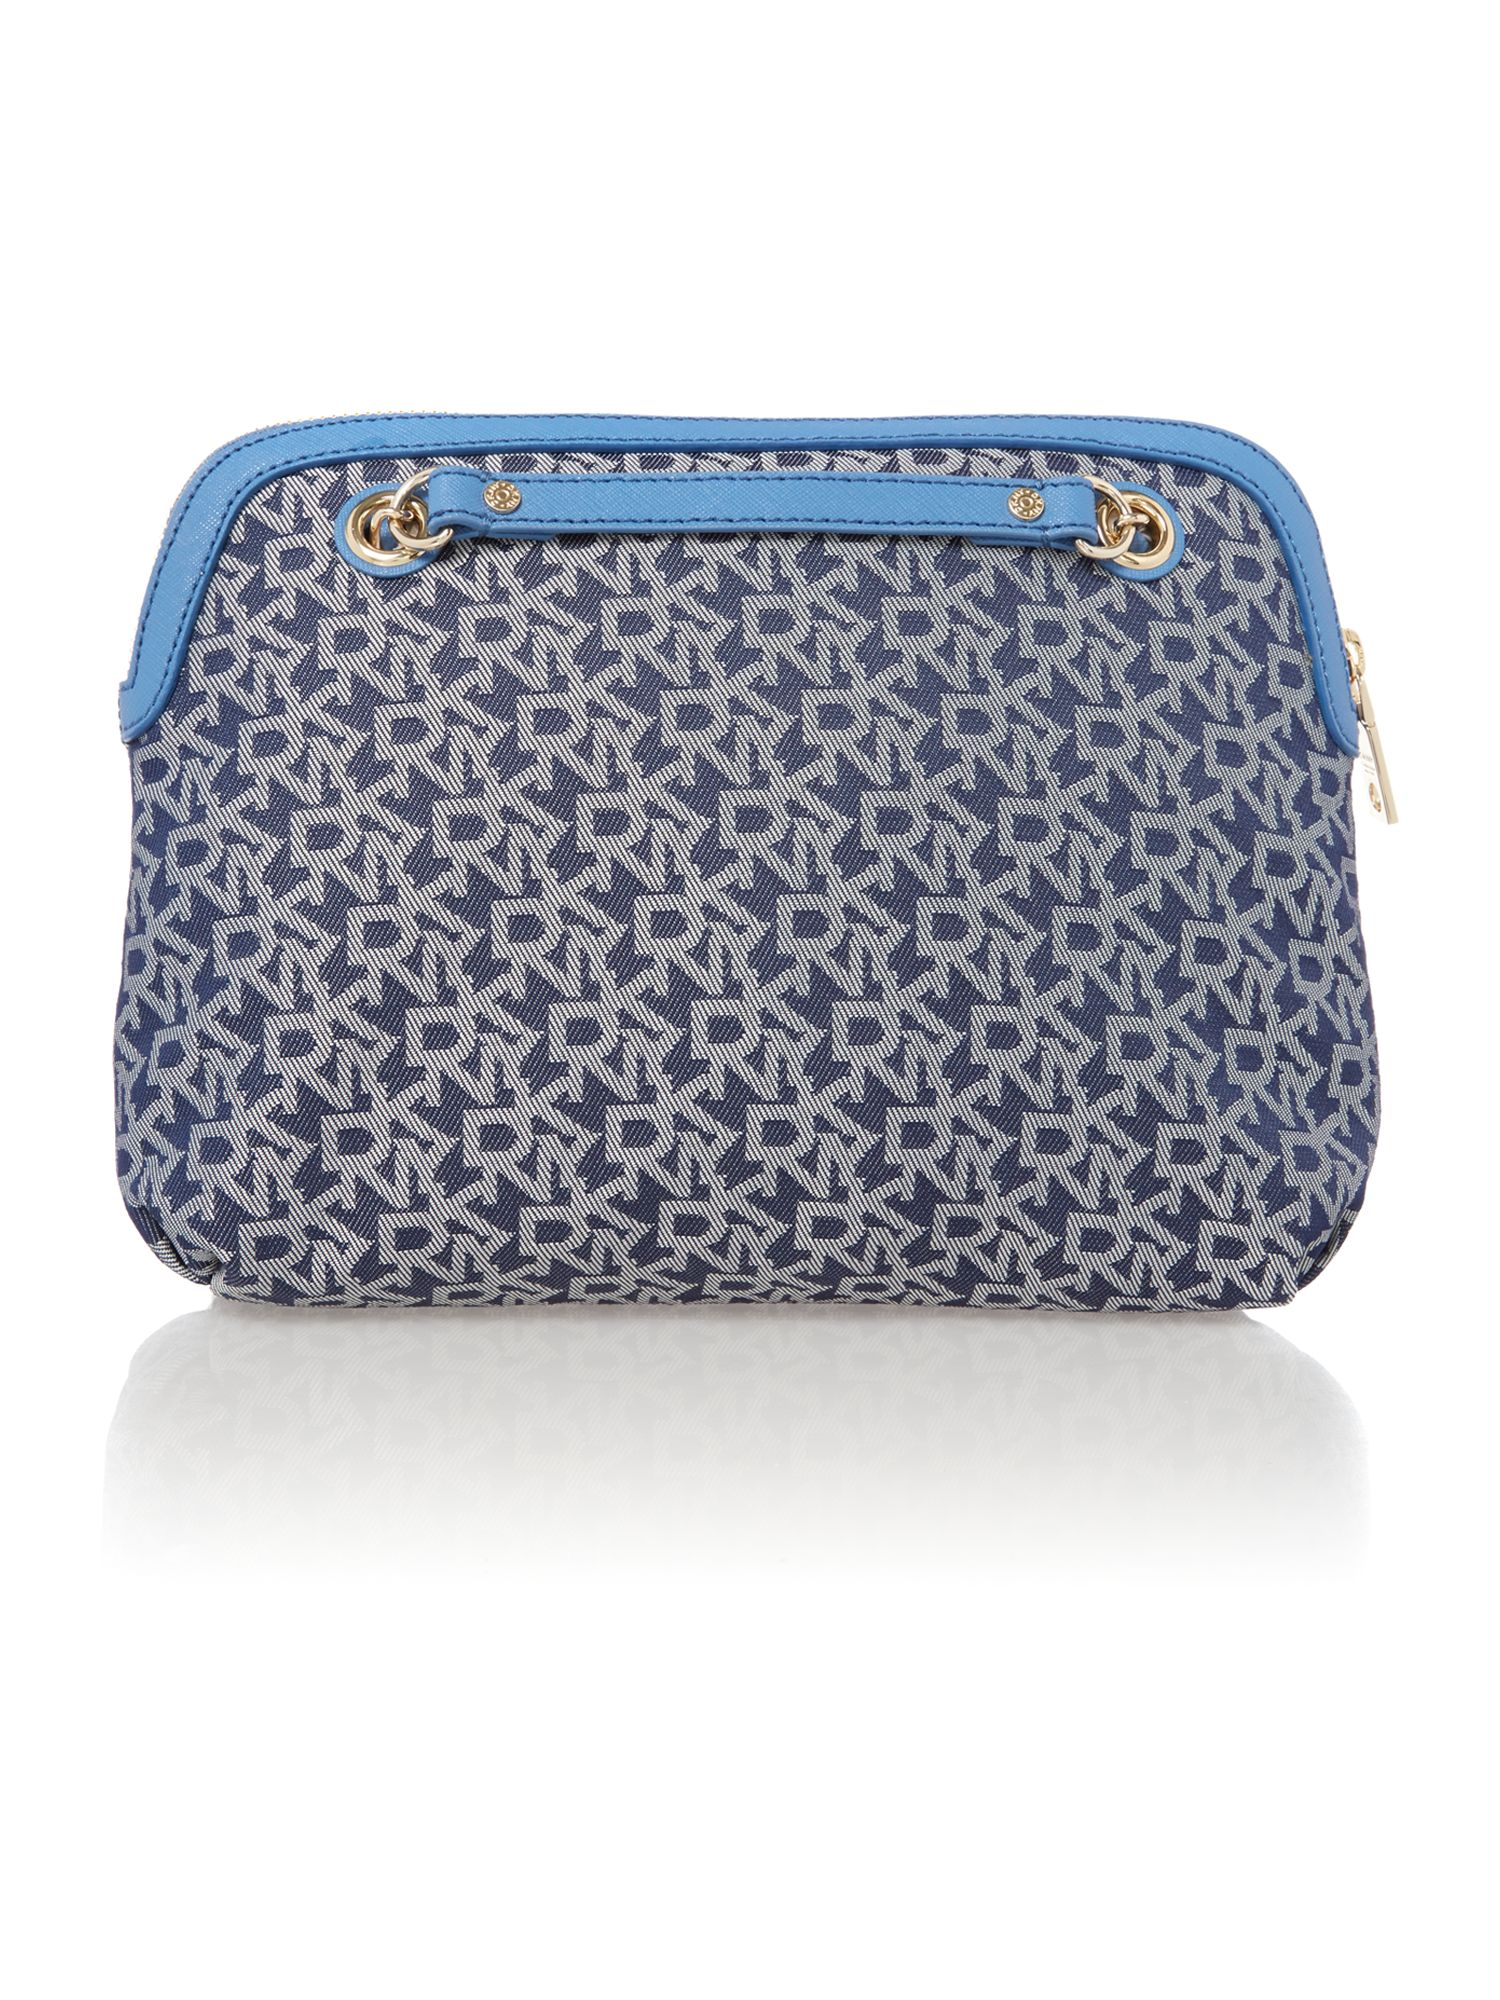 Saffiano blue medium crossbody bag